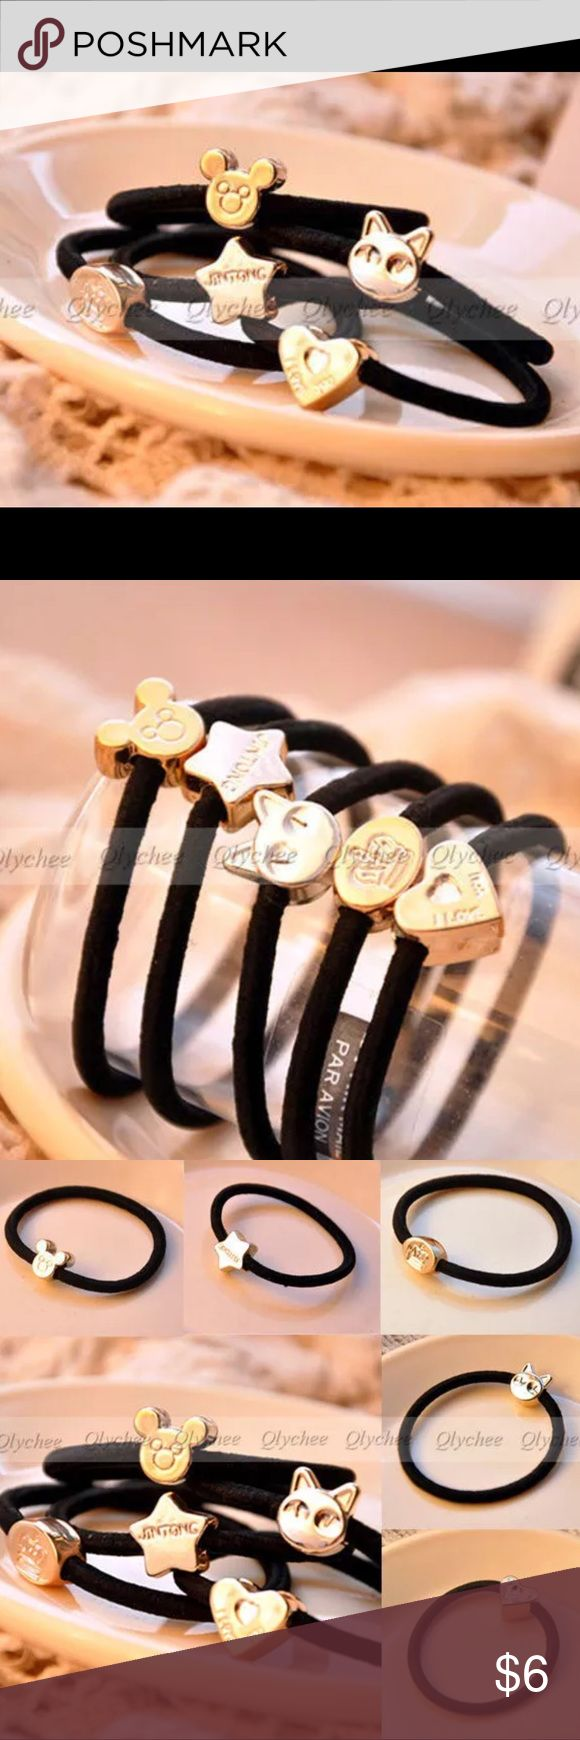 BUNDLE ONLY! 3 Black Hair Ties with Random Charms BUNDLE ONLY! Set of 3 Black Elastic Hair Ties with Random Charms. SO CUTE....I ❤️ these! Perfect for any age. SAVE 10% when you Bundle 2 or more items & pay only ONE shipping fee! Classic Trends Accessories Hair Accessories